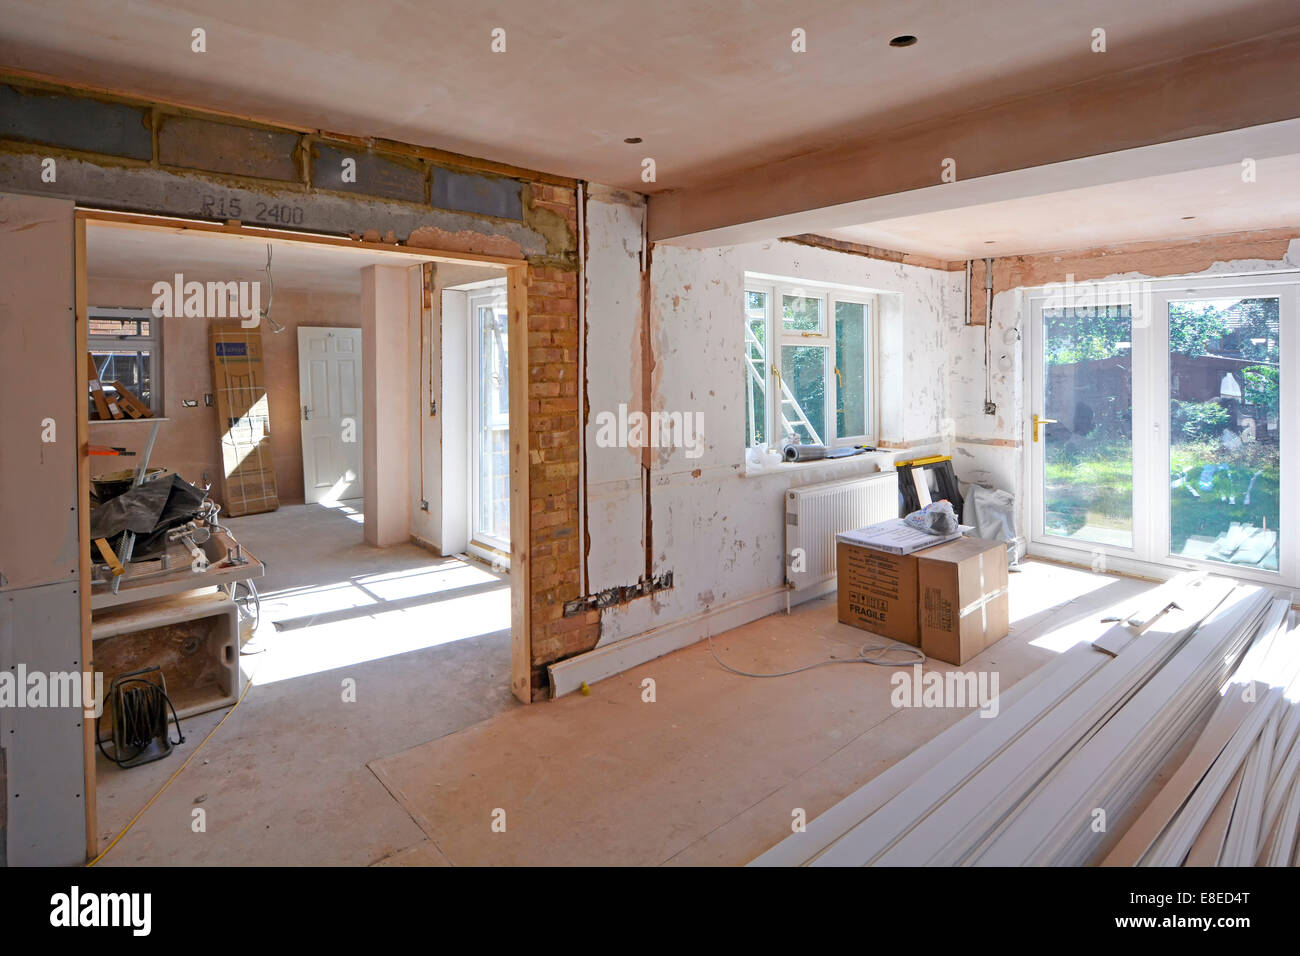 Detached House Interior Alterations To Lounge And Dining